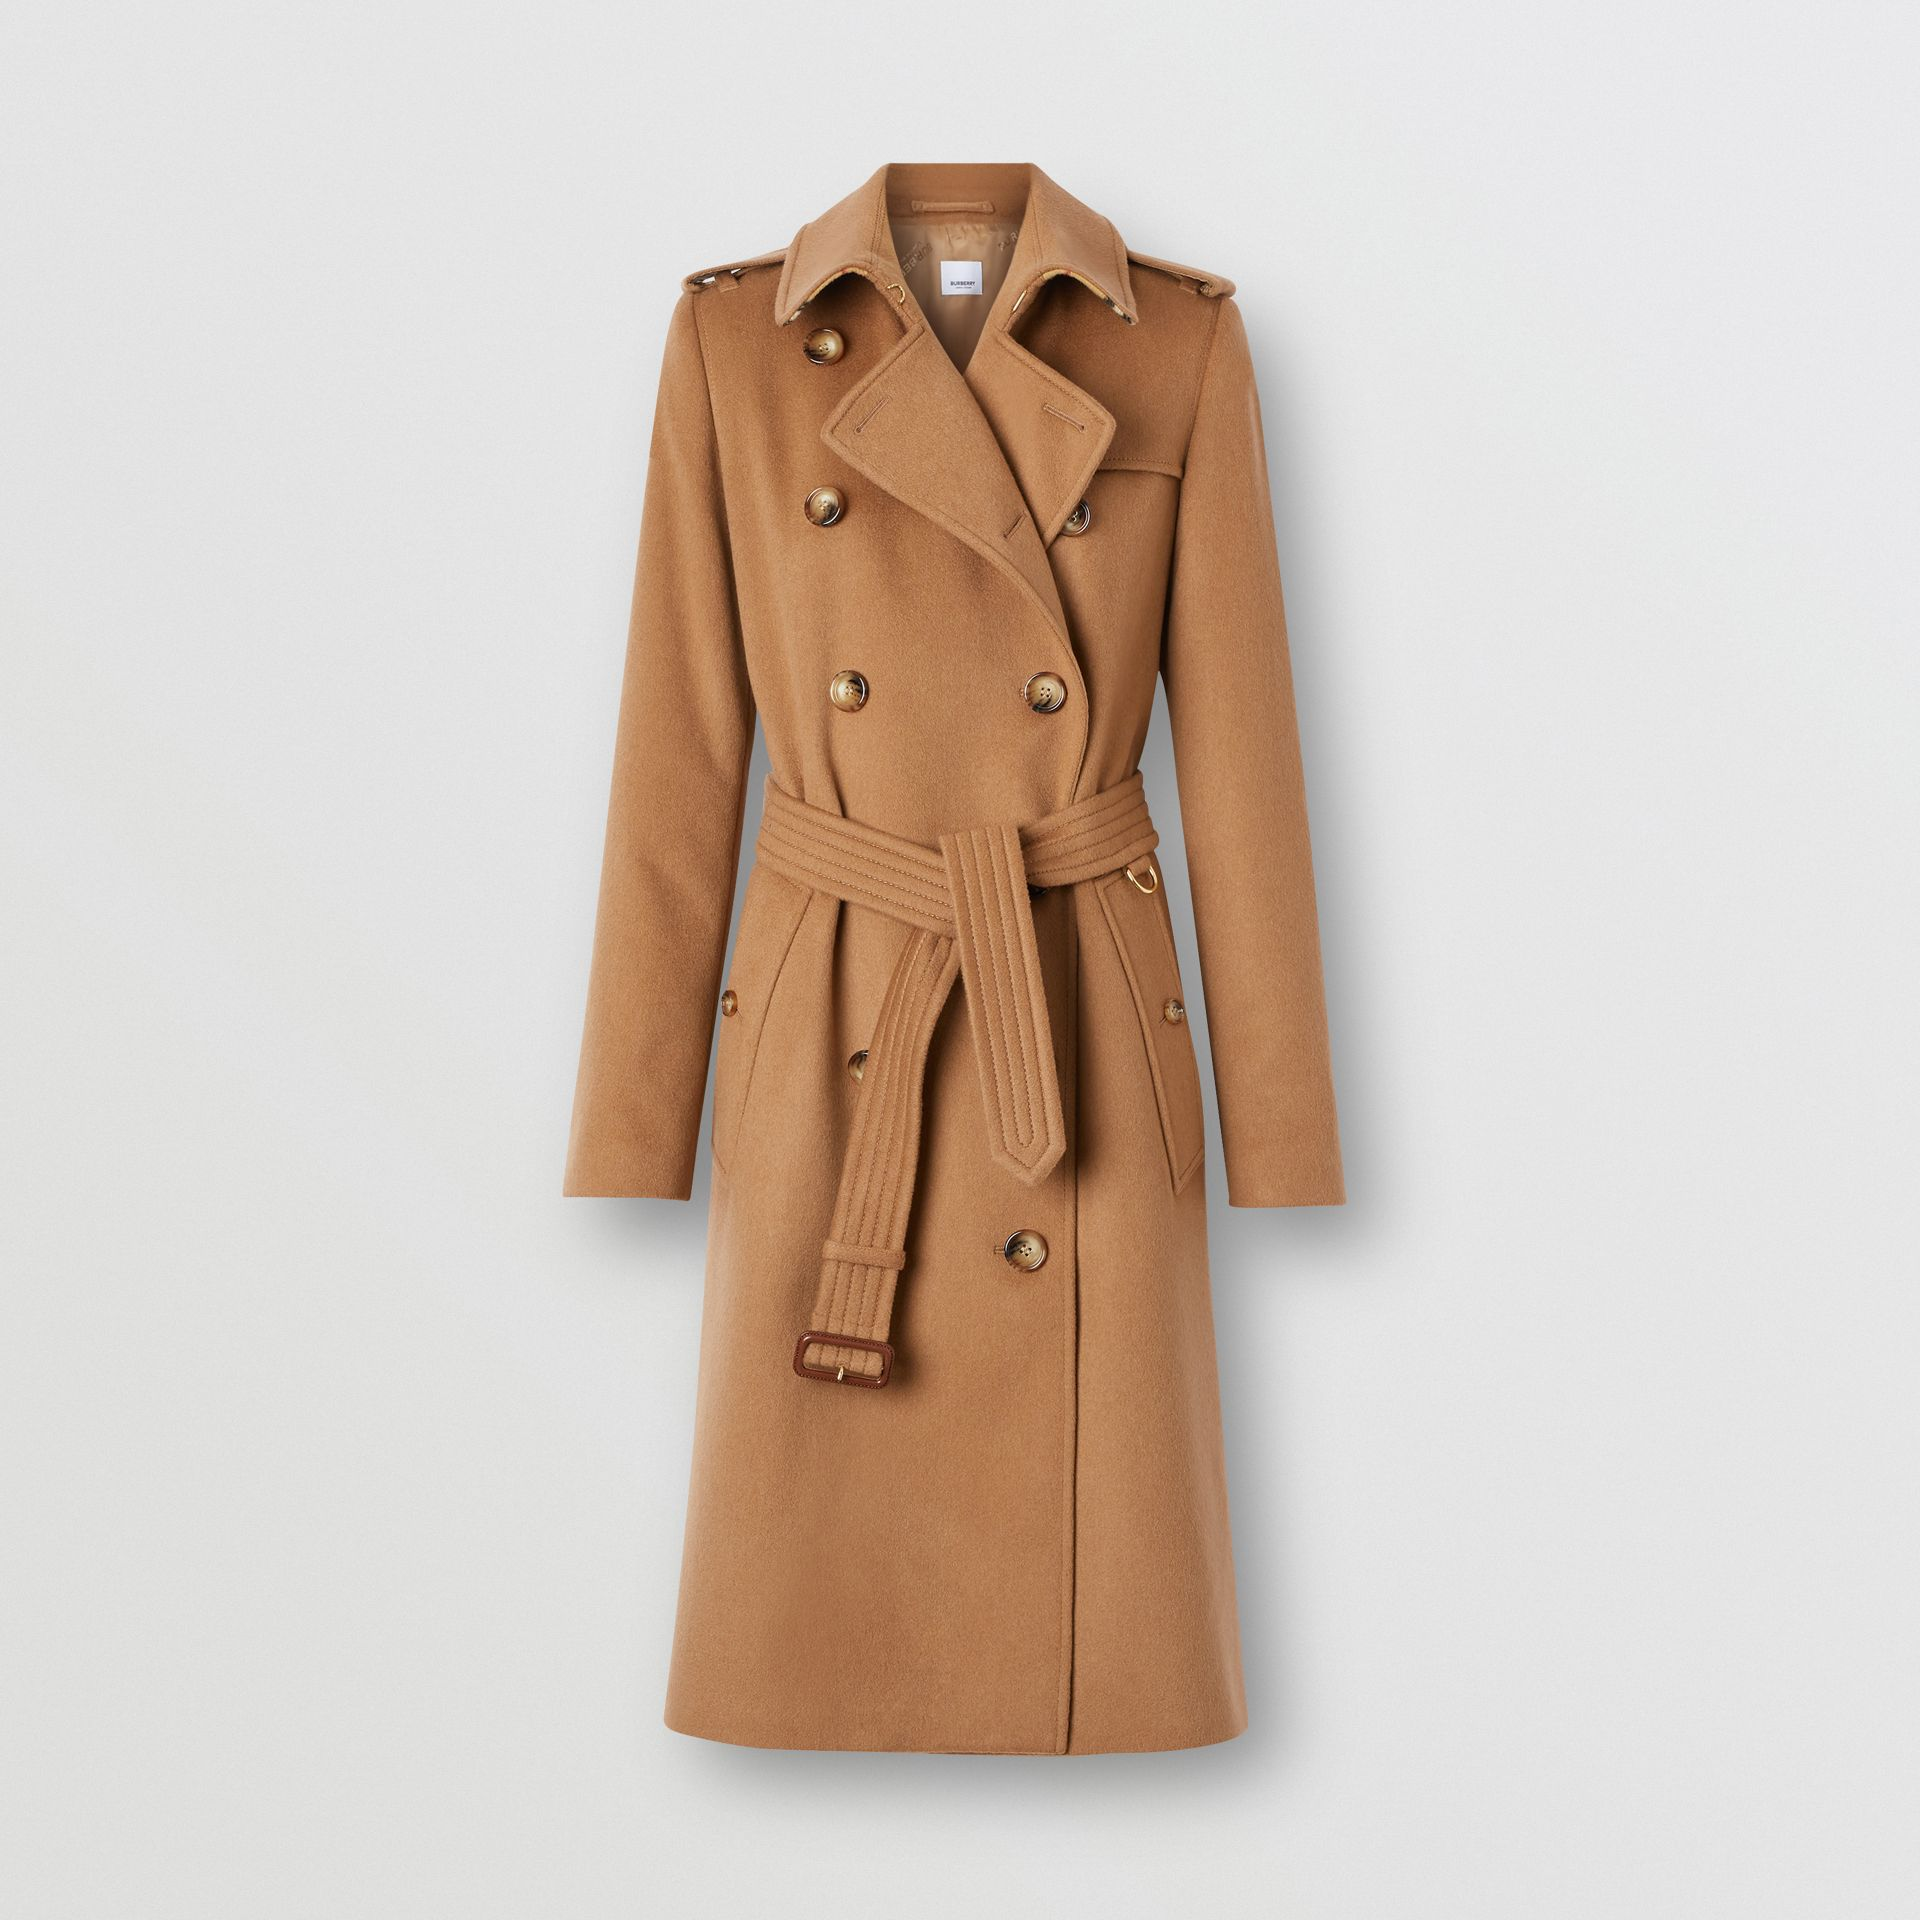 Regenerated Cashmere Trench Coat in Bronze - Women | Burberry - gallery image 3